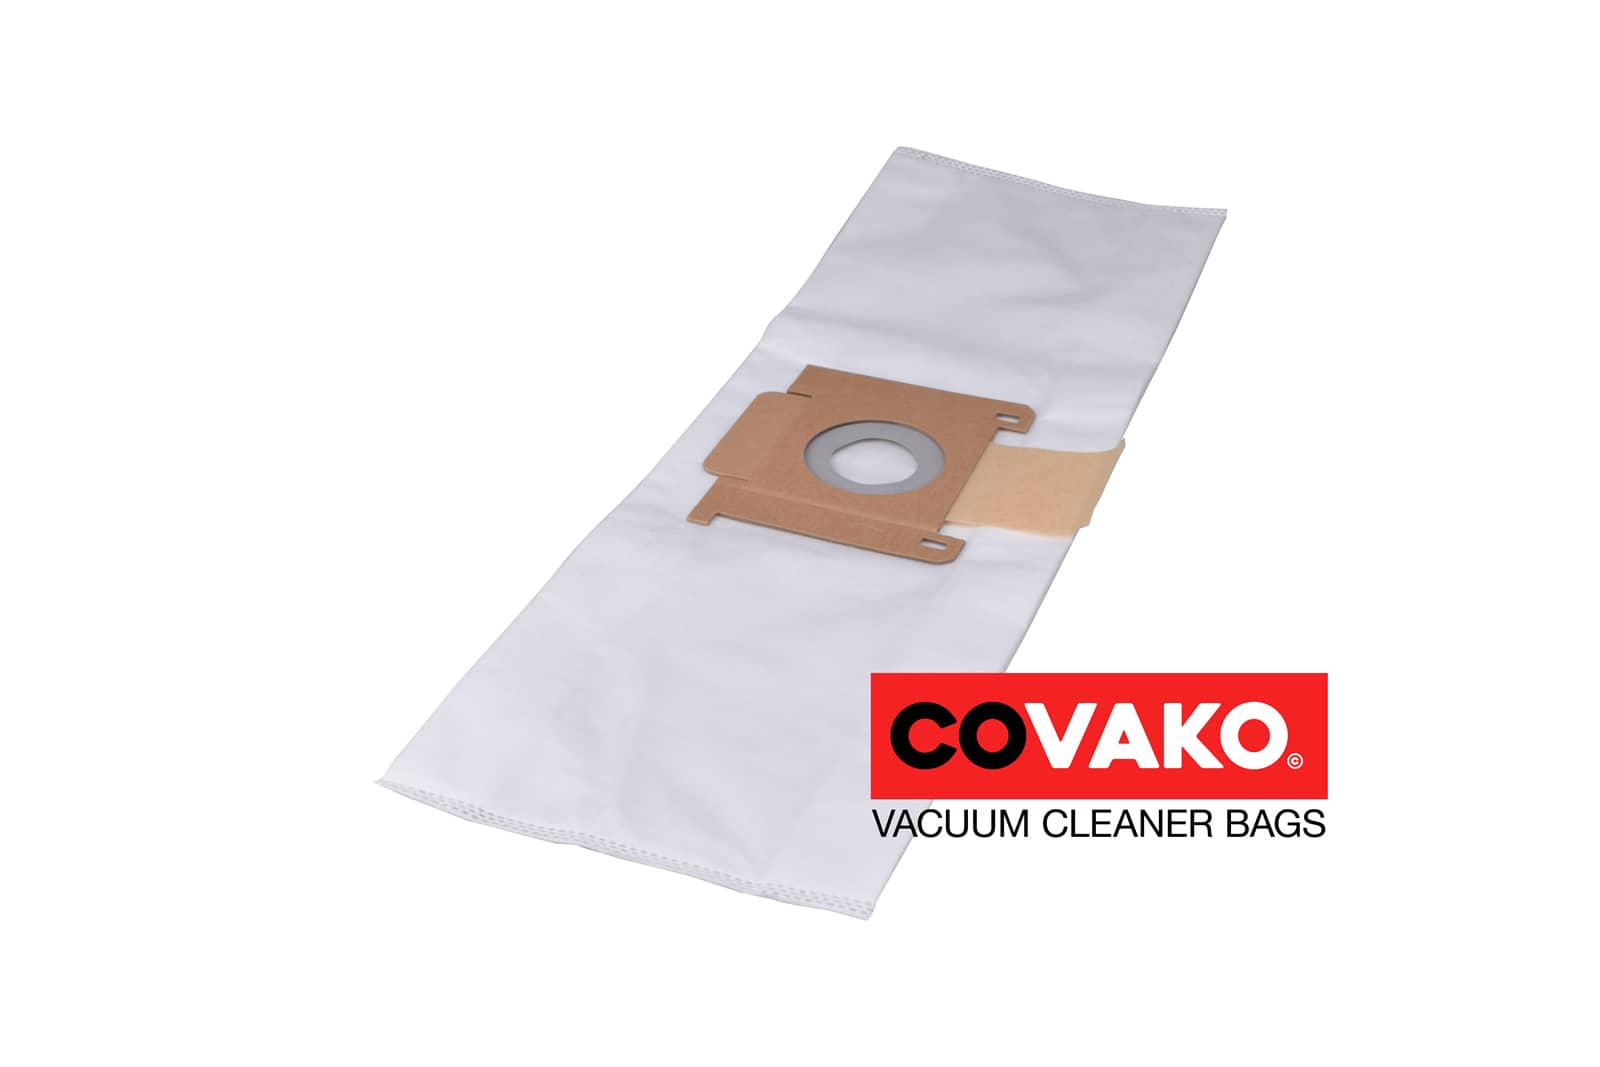 Ivac C 5 / Synthesis - Ivac vacuum cleaner bags